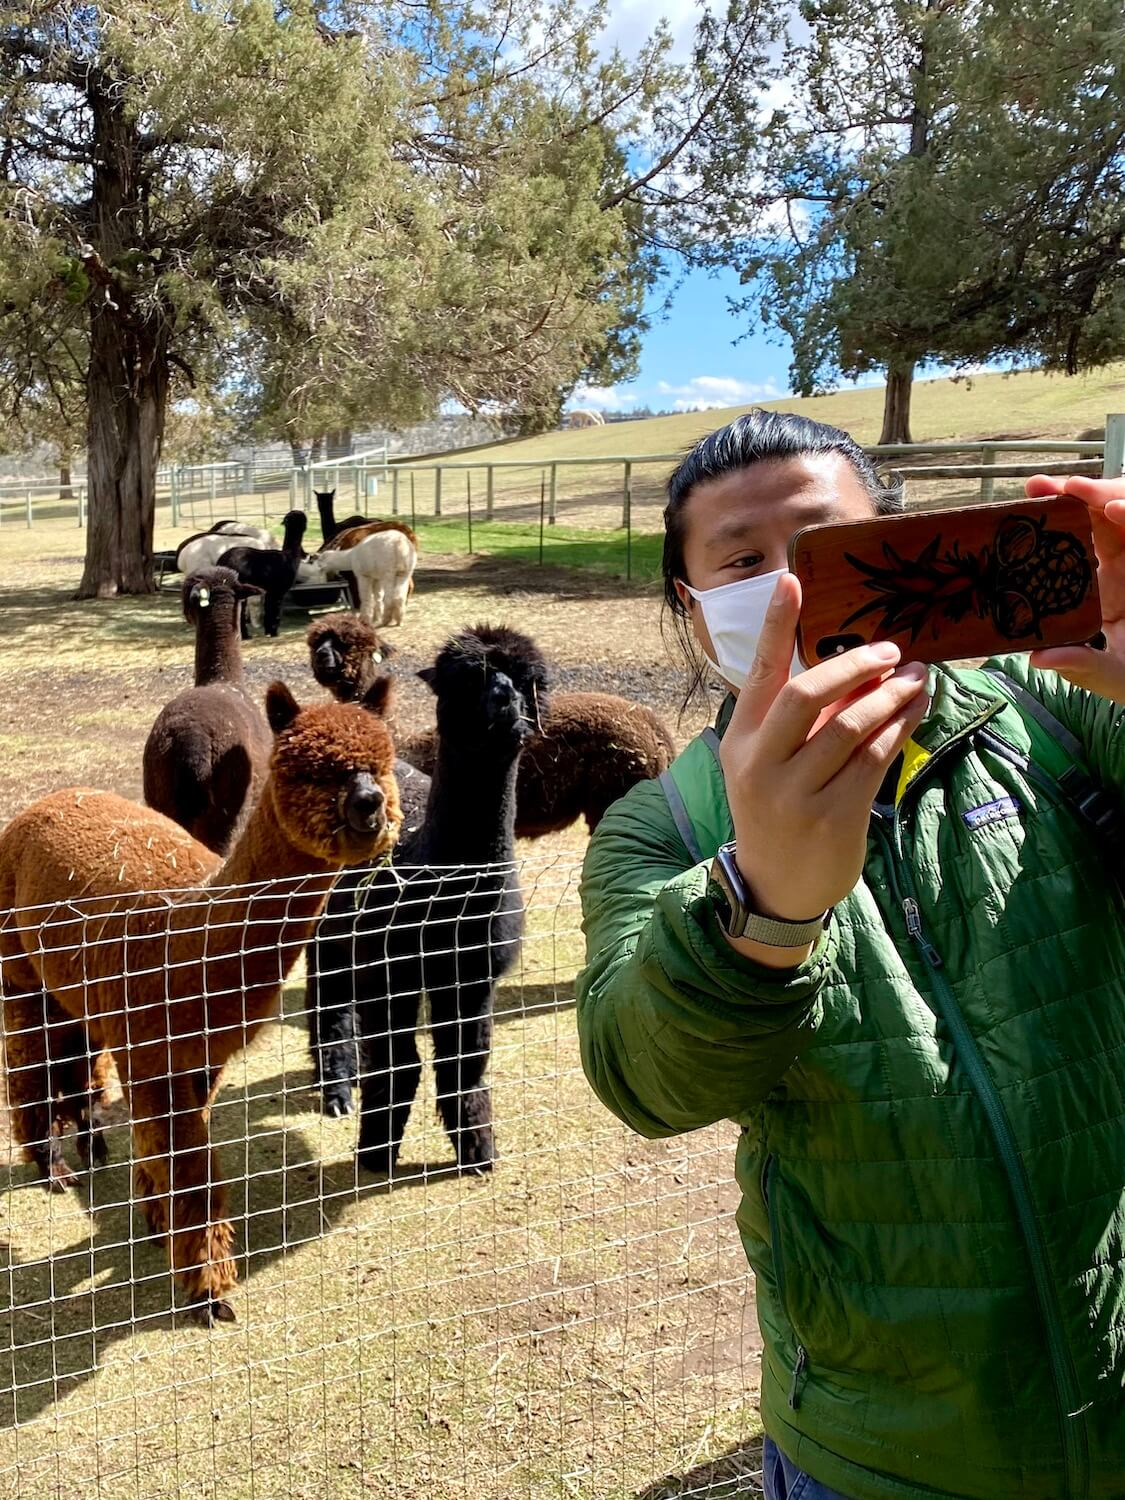 A man wearing a white face mask takes a selfie with brown and black alpacas in a pen behind him.  Several are eating hay under dry trees on a rolling farm pasture scene.